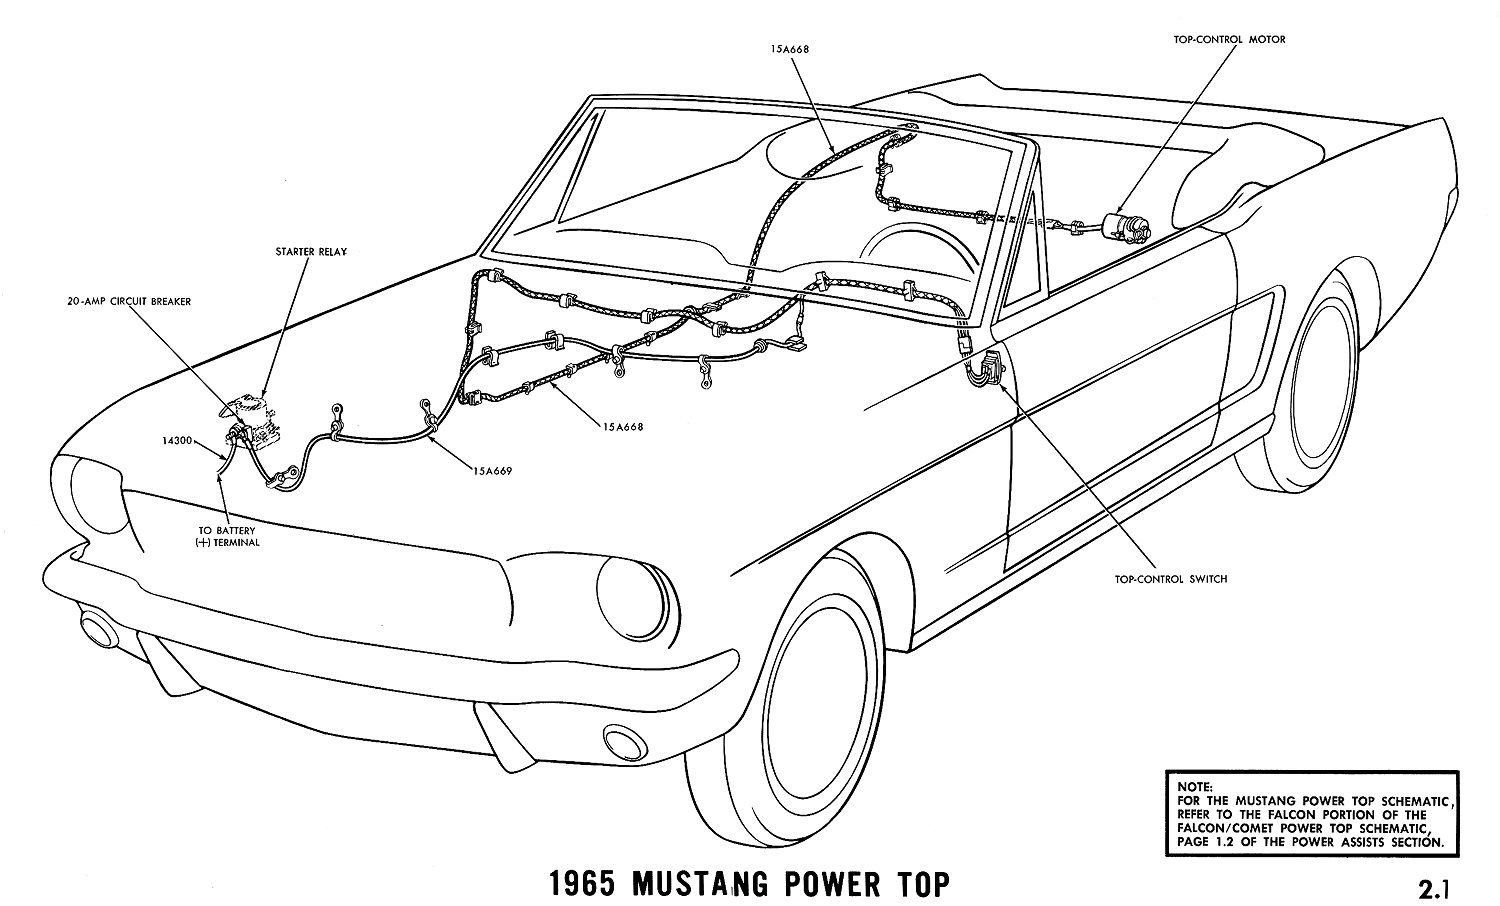 1965 Mustang Alternator Wiring Diagram Data Diagrams Average Joe Restoration Tachometer